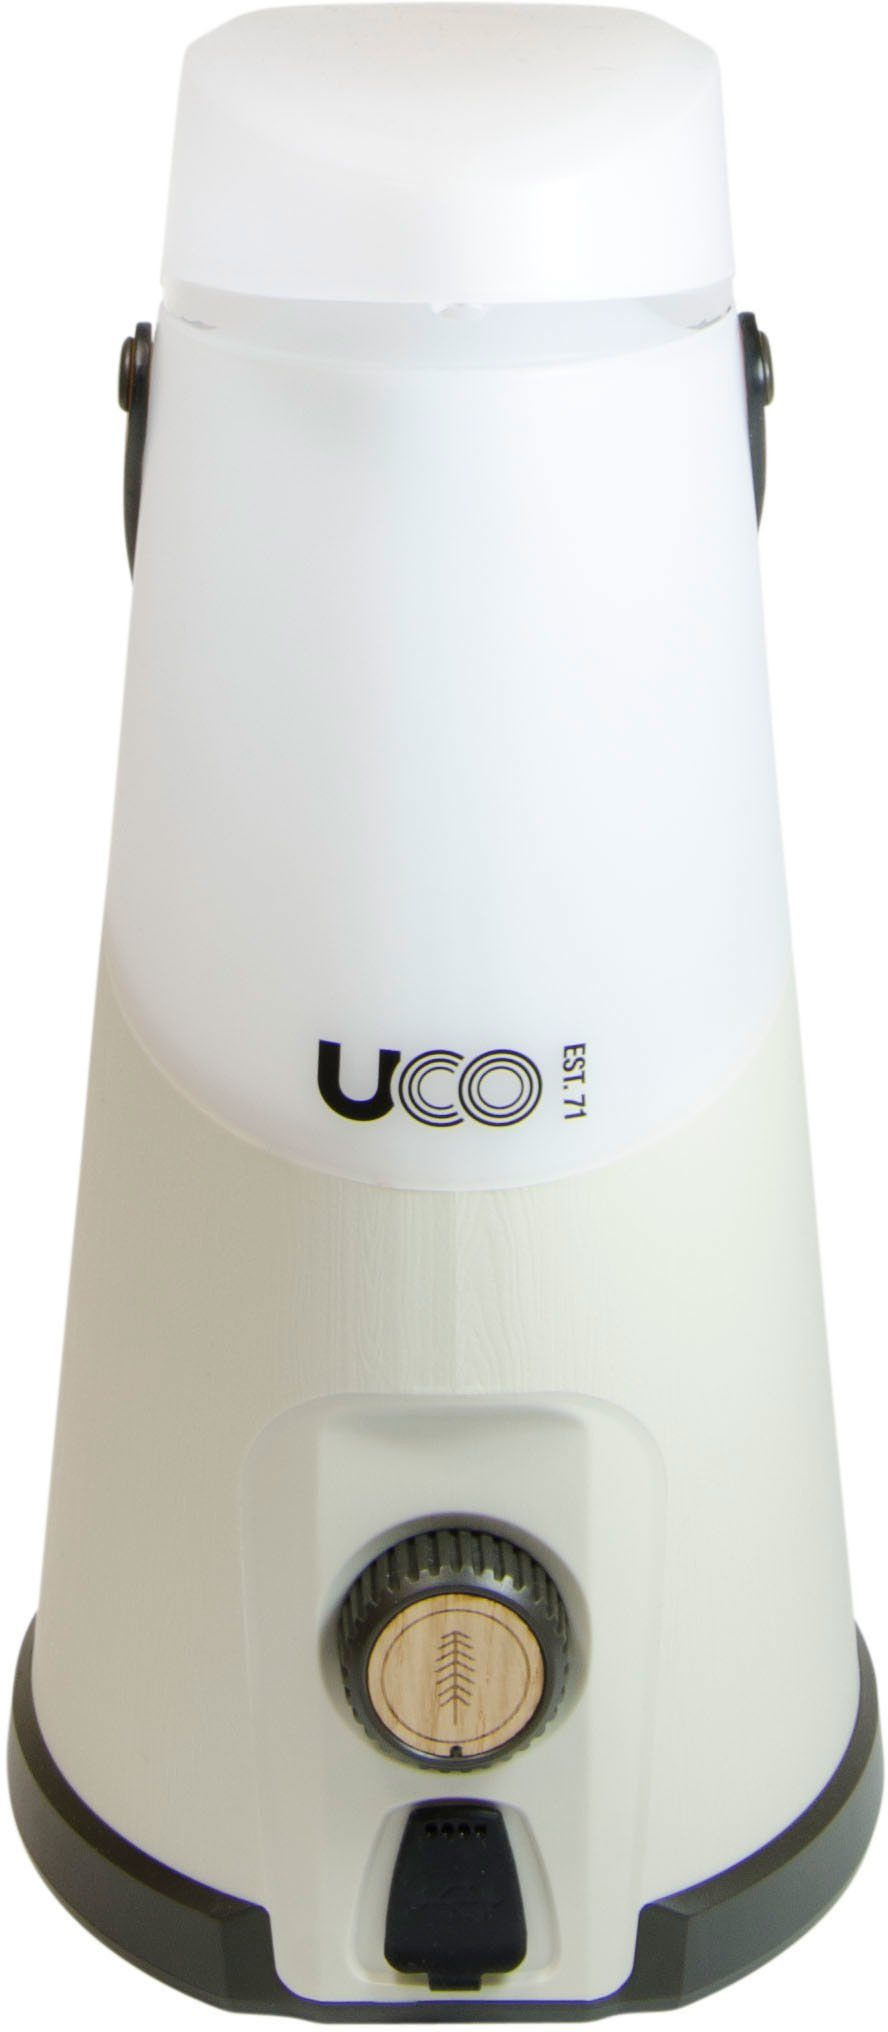 UCO Camping-Beleuchtung »Sitka LED Laterne«